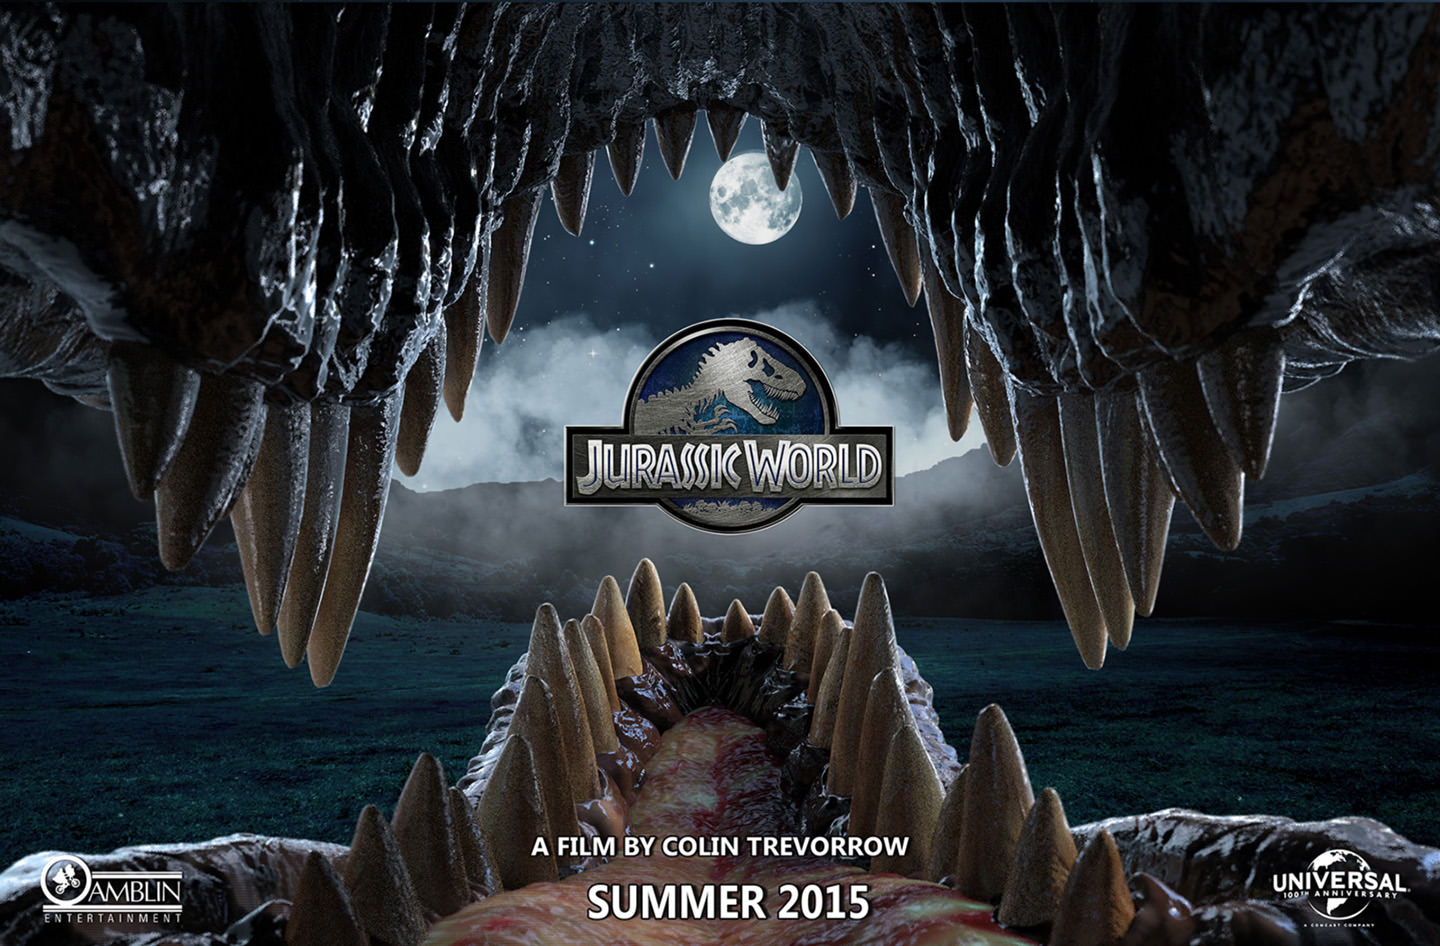 Blog-mode-and-the-city-lifestyle-cinq-petites-choses-135-jurassic-world